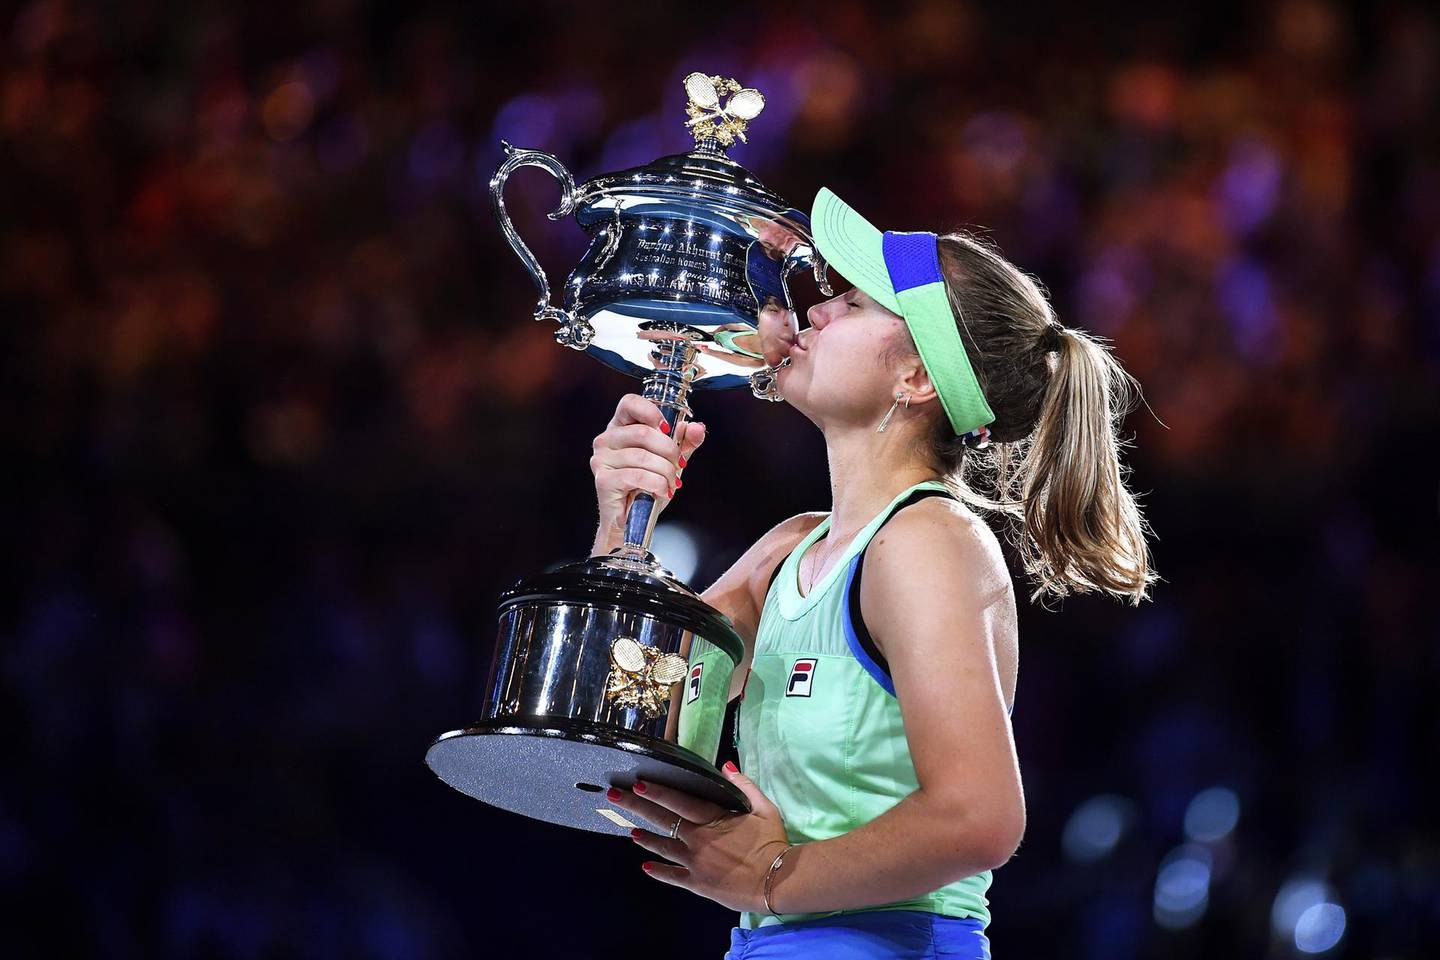 epa08184762 Sofia Kenin of the USA kisses the Daphne Ackhurst Memorial Cup trophy after winning the women's singles final against Garbine Muguruza of Spain at the Australian Open Grand Slam tennis tournament at Rod Laver Arena in Melbourne, Australia, 01 February 2020.  EPA/LUKAS COCH AUSTRALIA AND NEW ZEALAND OUT